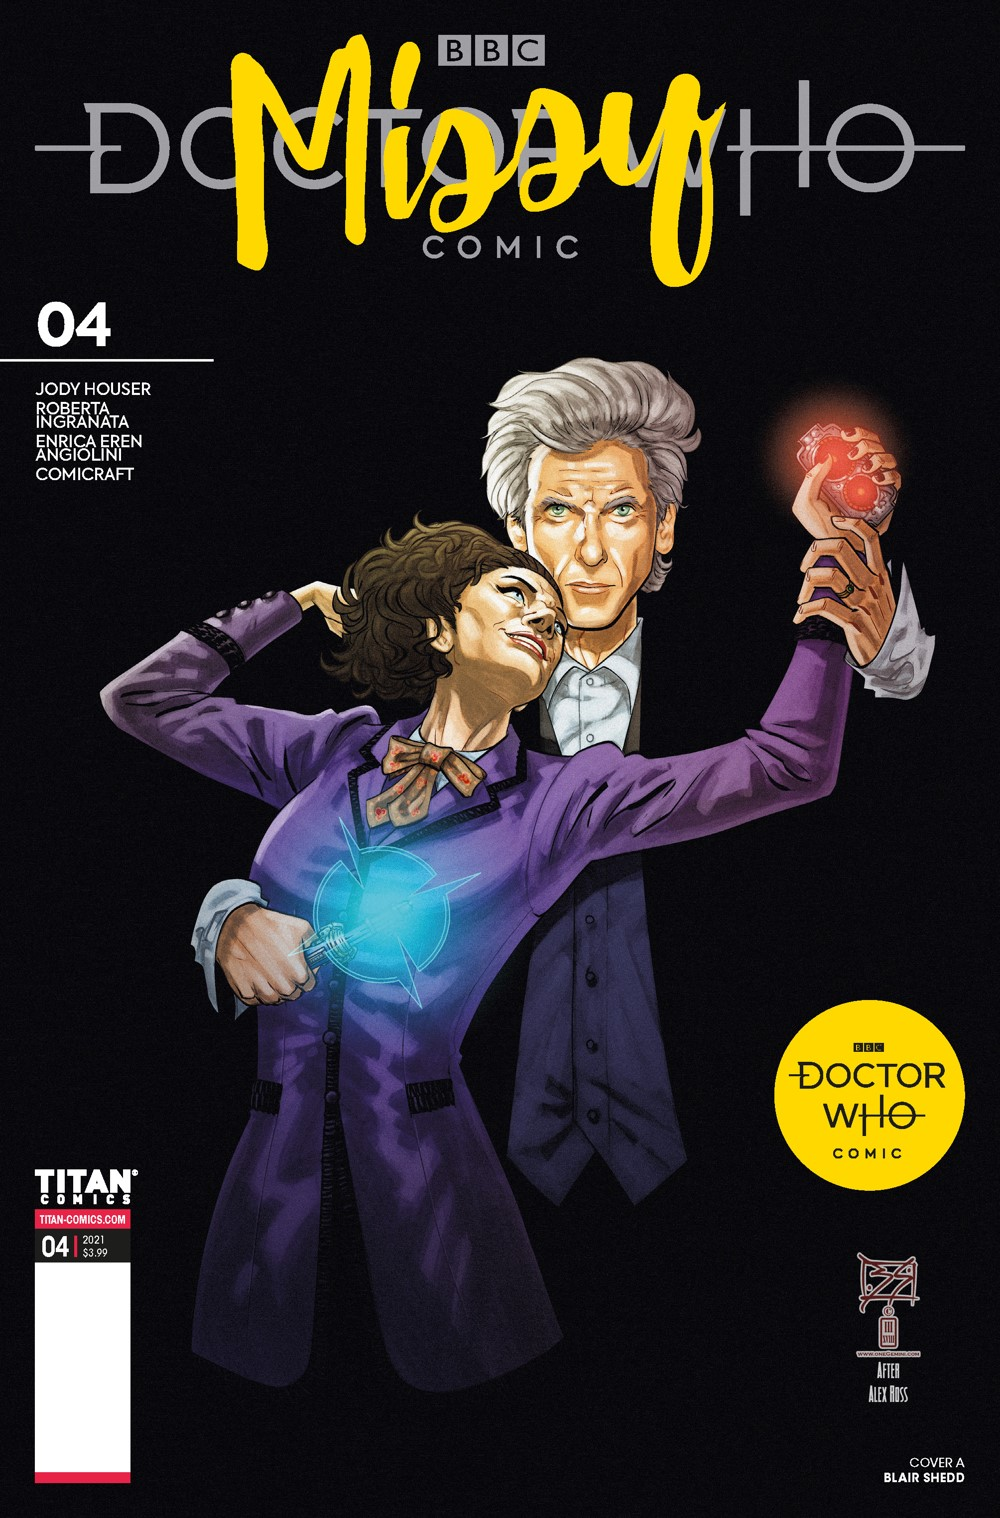 DW_Missy_4_01_COVER1 ComicList Previews: DOCTOR WHO MISSY #4